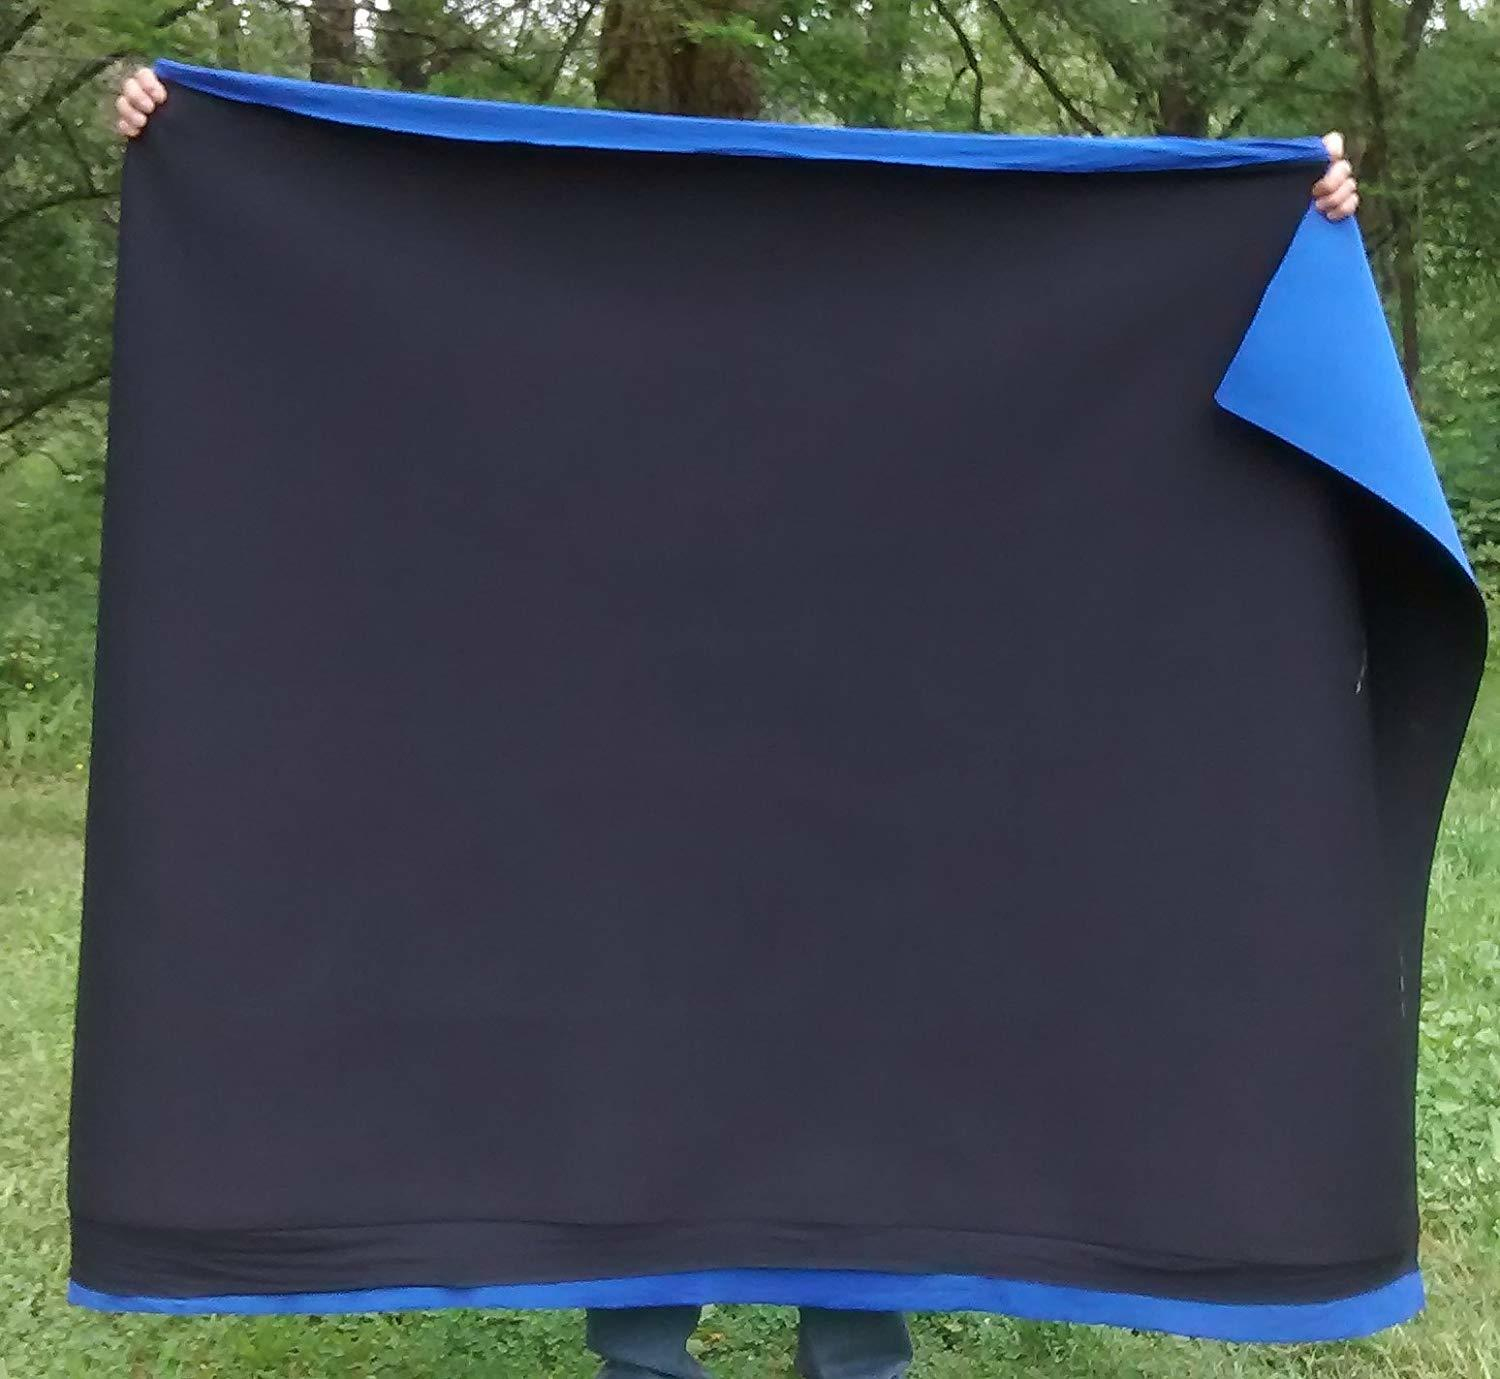 Prosperity neoprene fabric suppliers manufacturer for sport